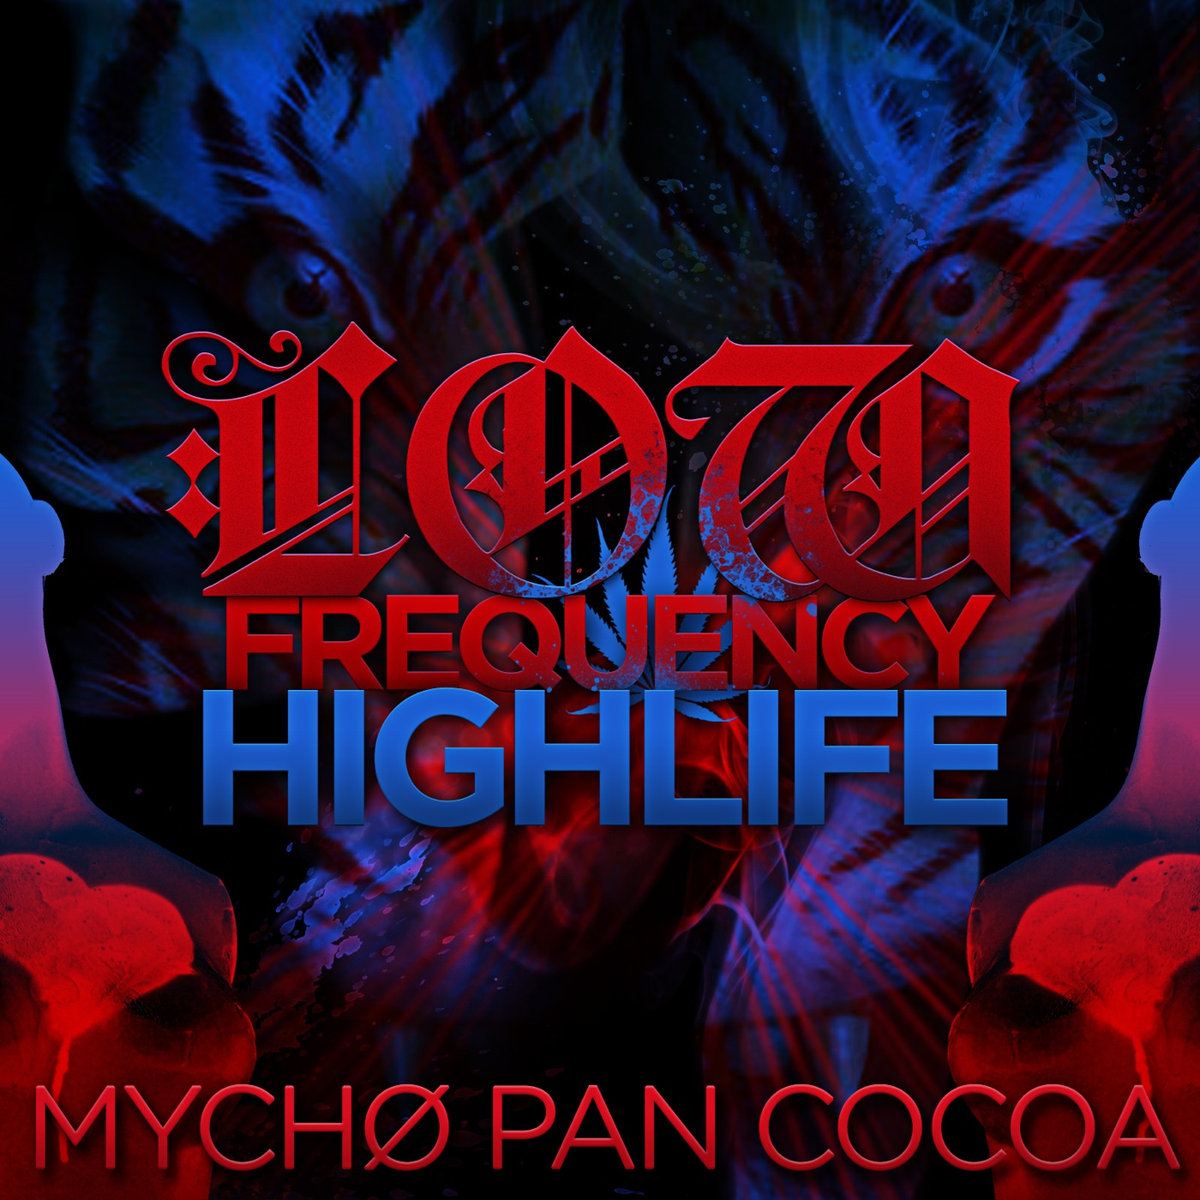 Mycho Pan Cocoa - Flute Shot @ 'Low Frequency High Life' album (electronic, dubstep)